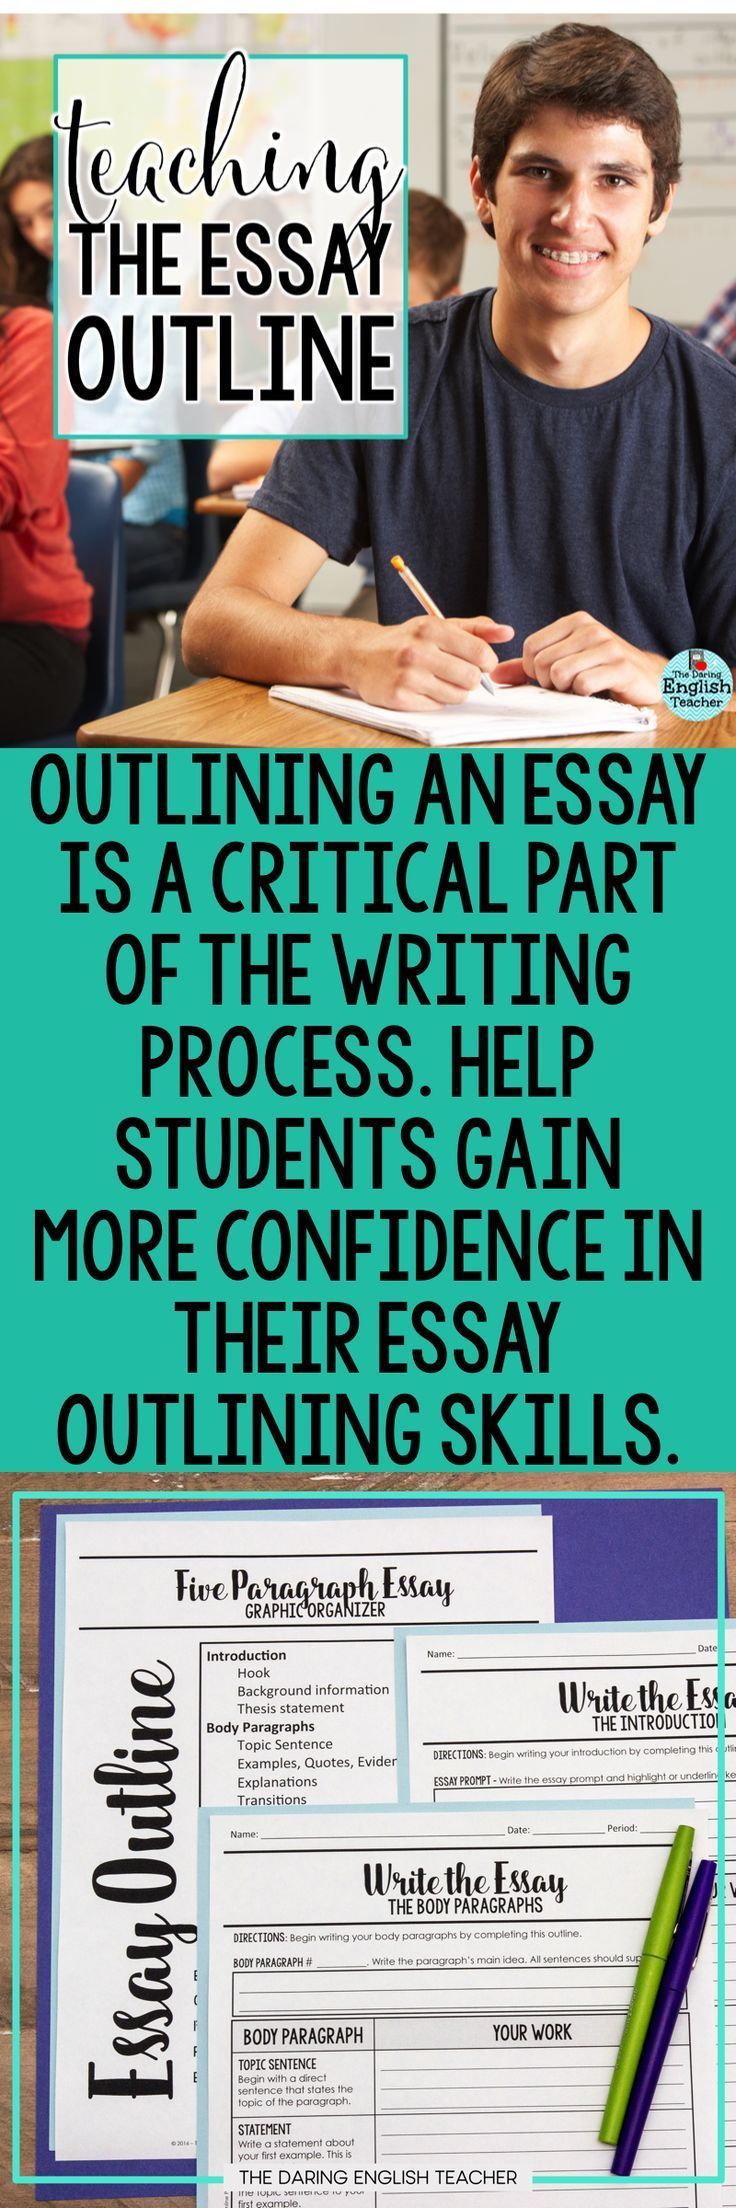 essay writing ideas middle school Persuasive essay and speech topics should students in middle school be able to play on there phones keep it going with them loved the persuasive writing ideas.